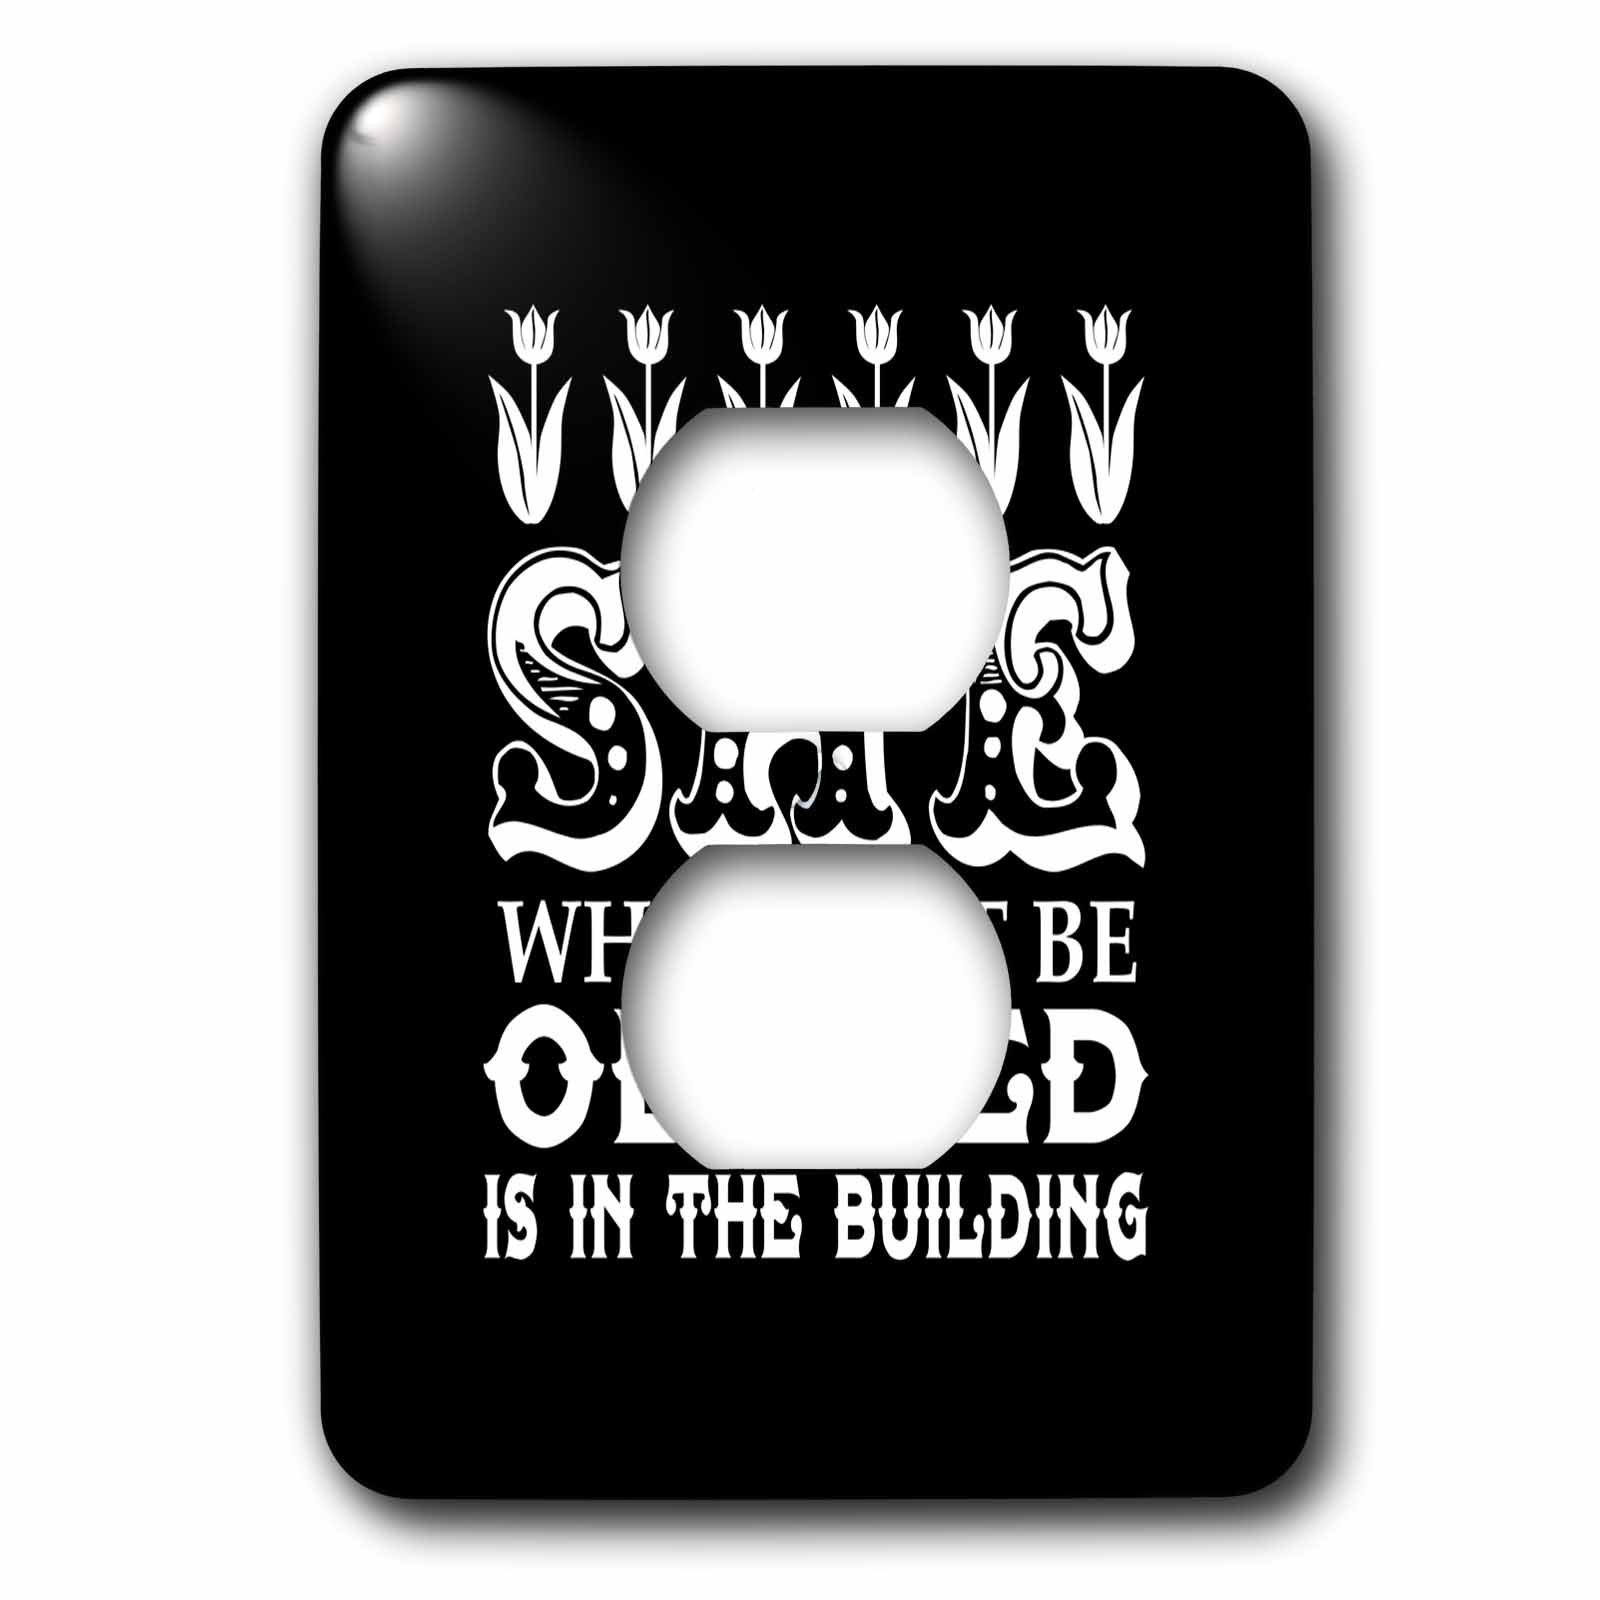 3dRose Russ Billington Designs - She Who Must Be Obeyed- Strong Woman Design in White on Black - Light Switch Covers - 2 plug outlet cover (lsp_262292_6)